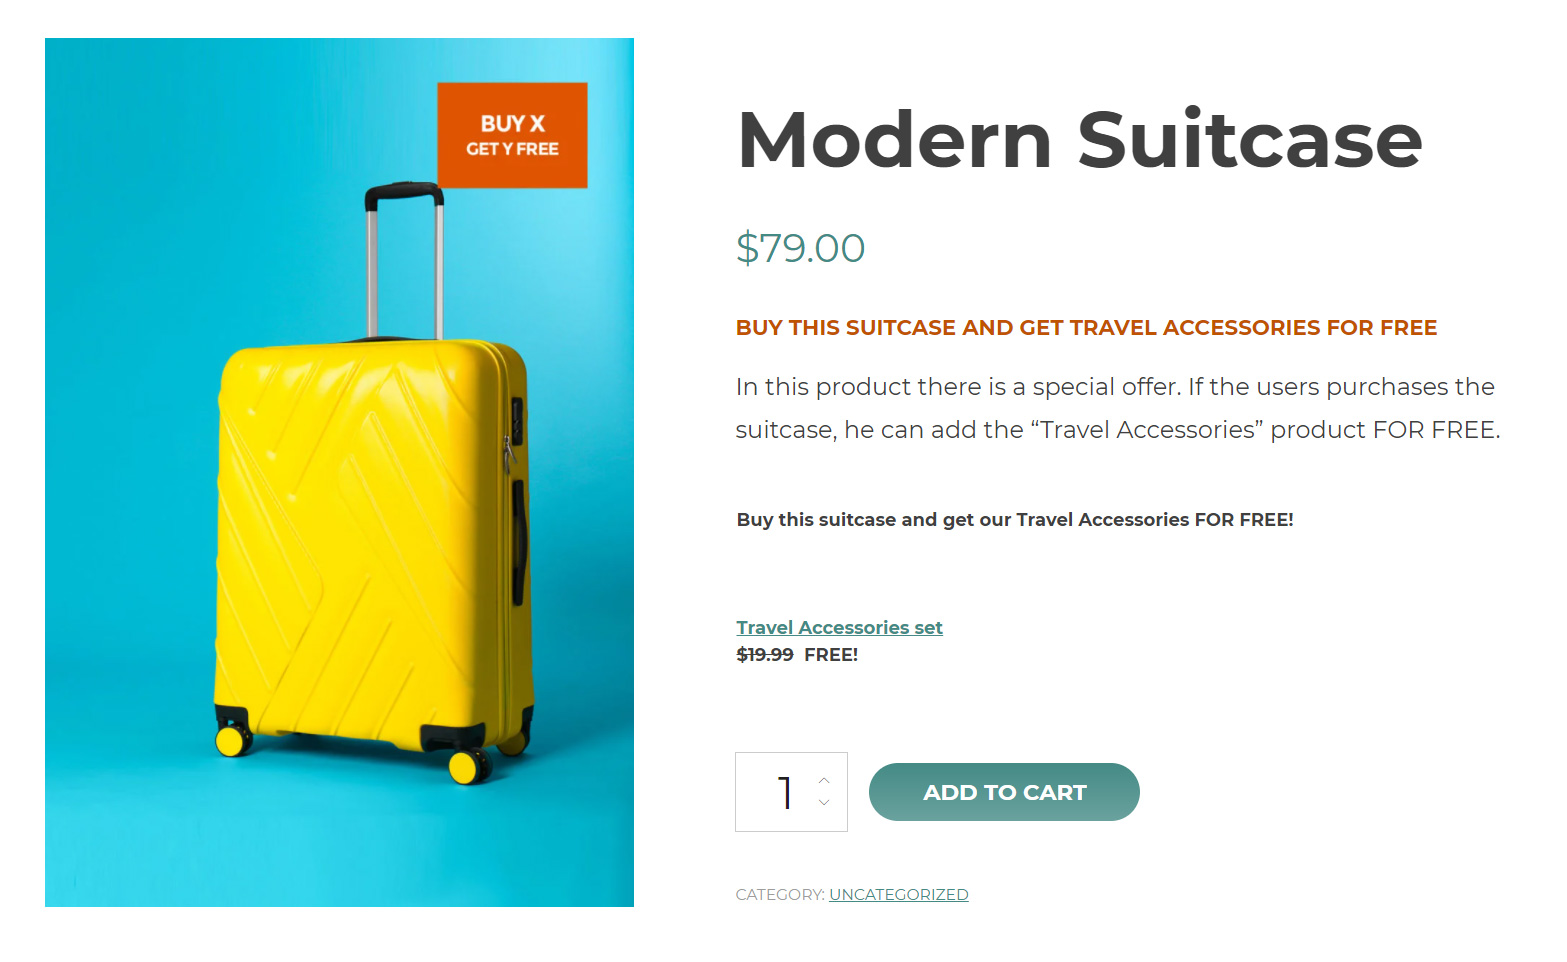 conditional discont for suitcase and accessories